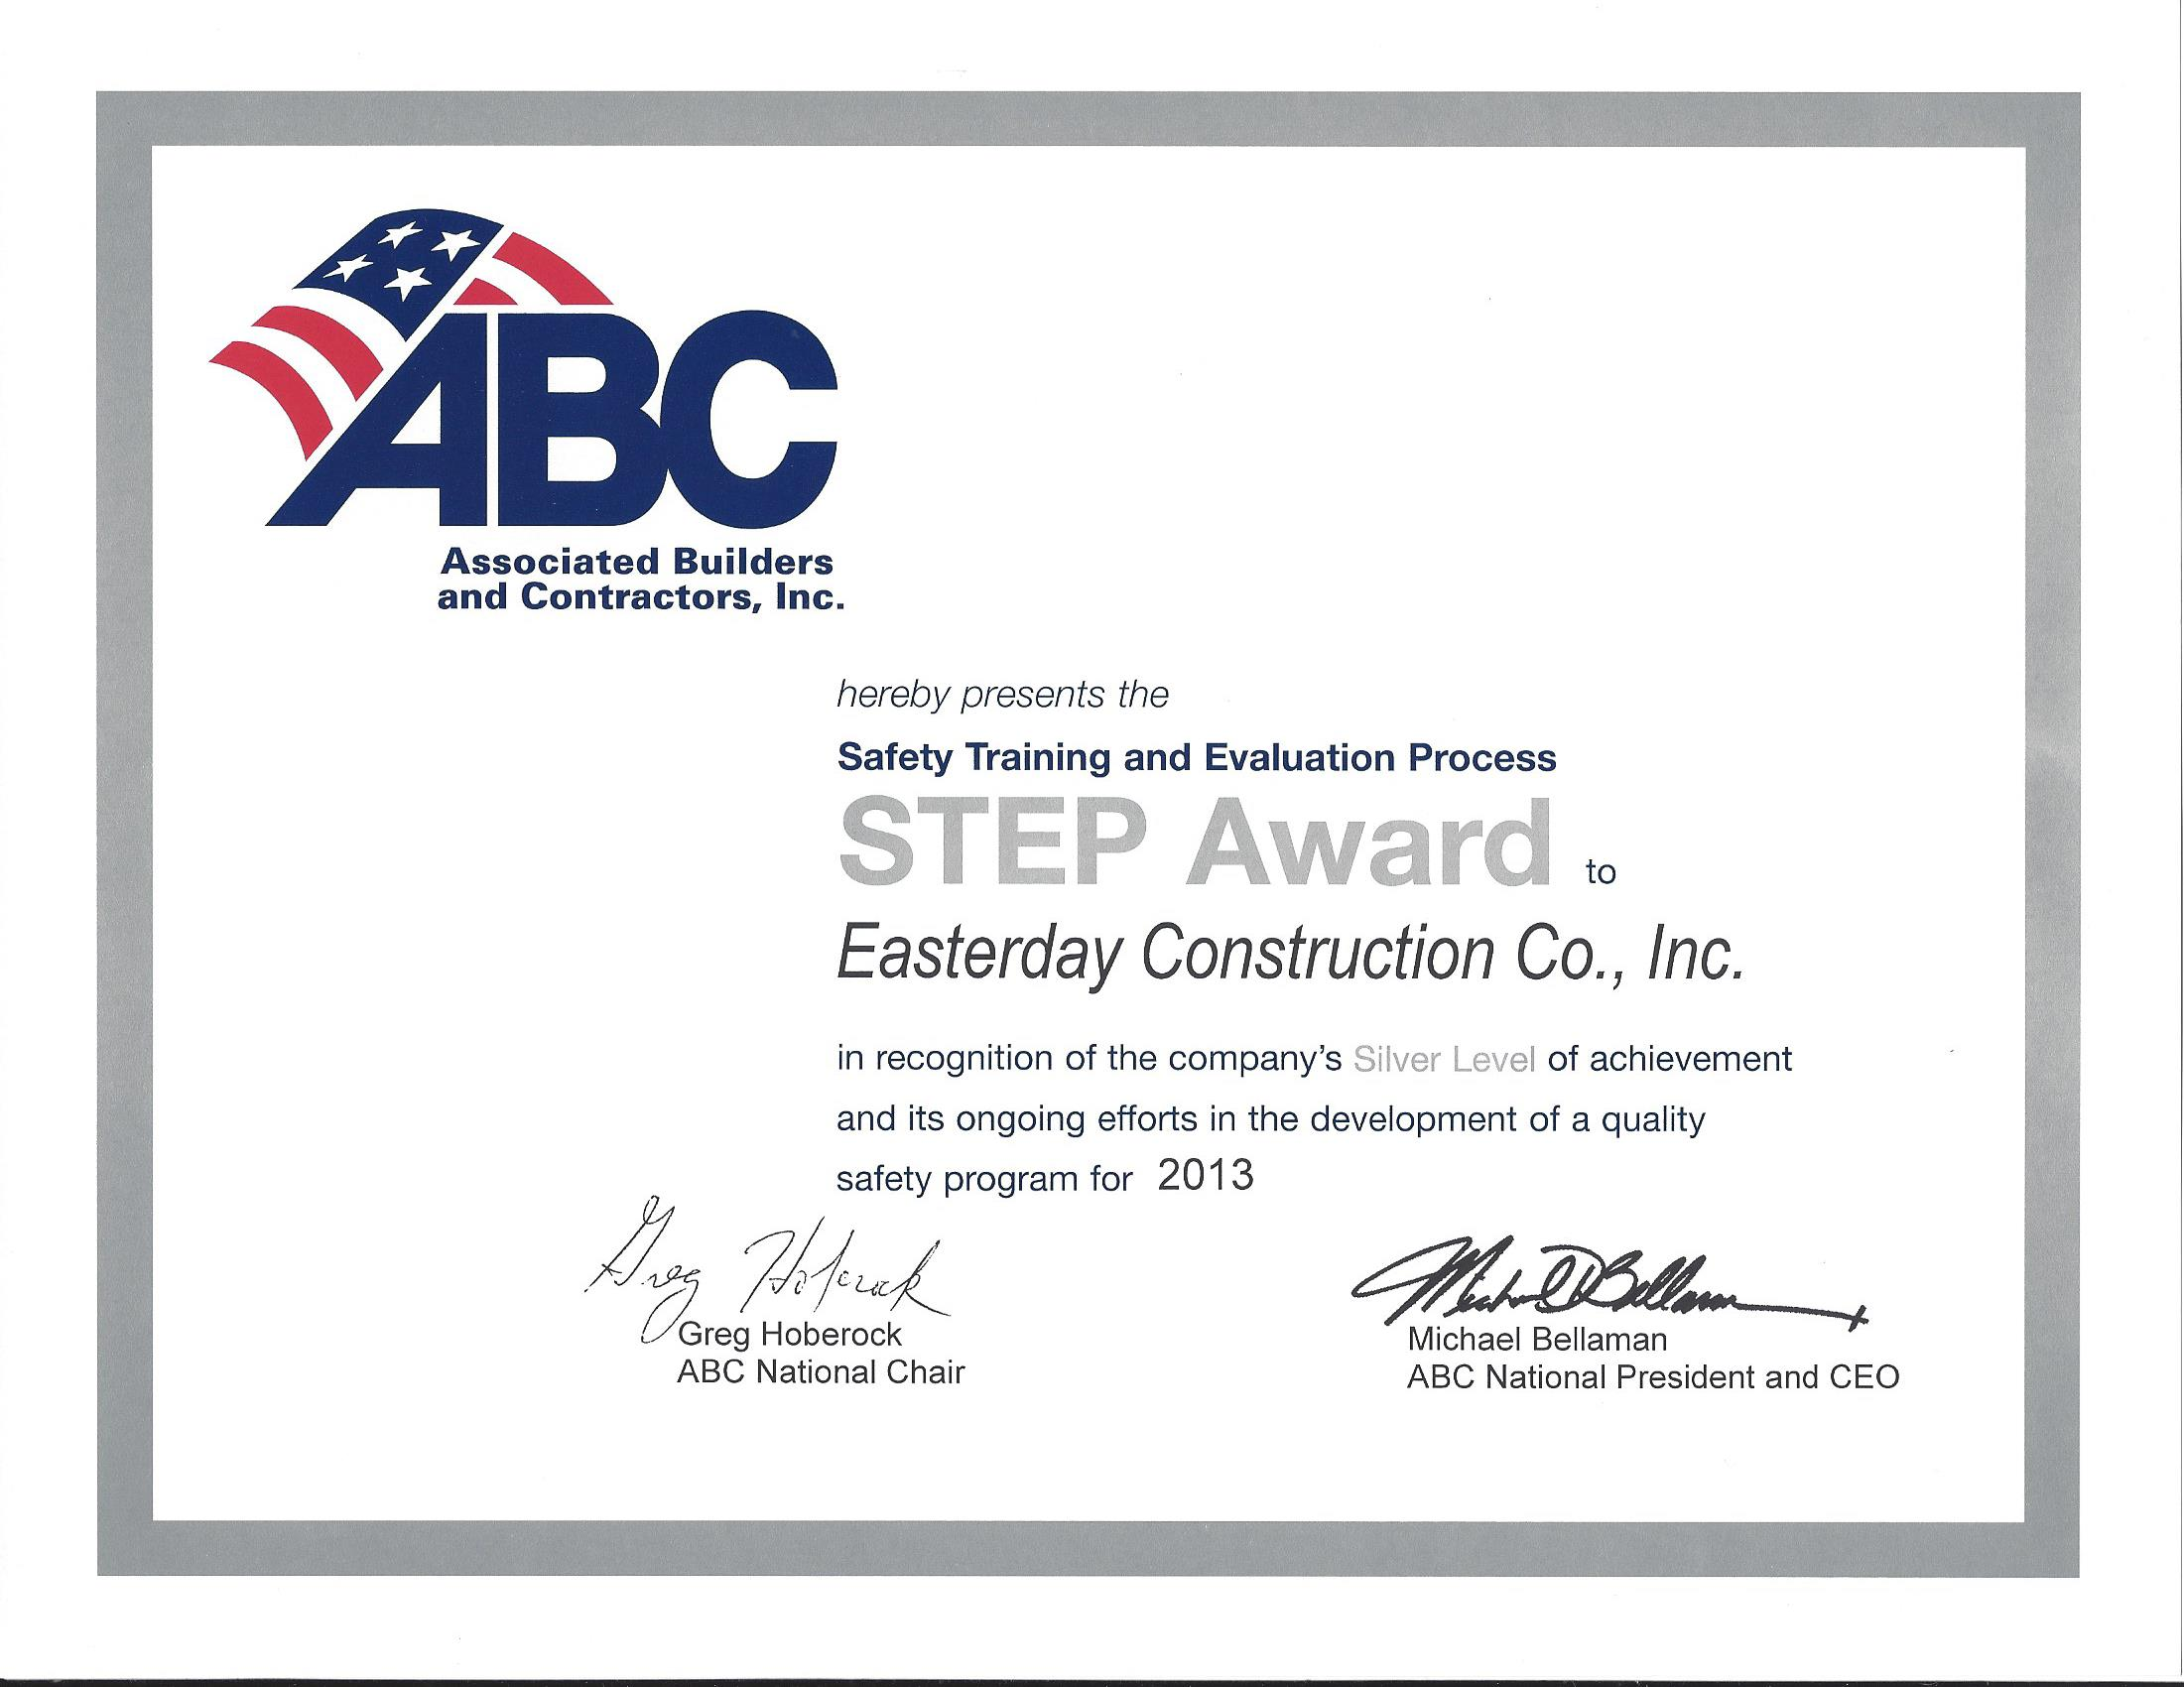 ABC STEP Award 2013